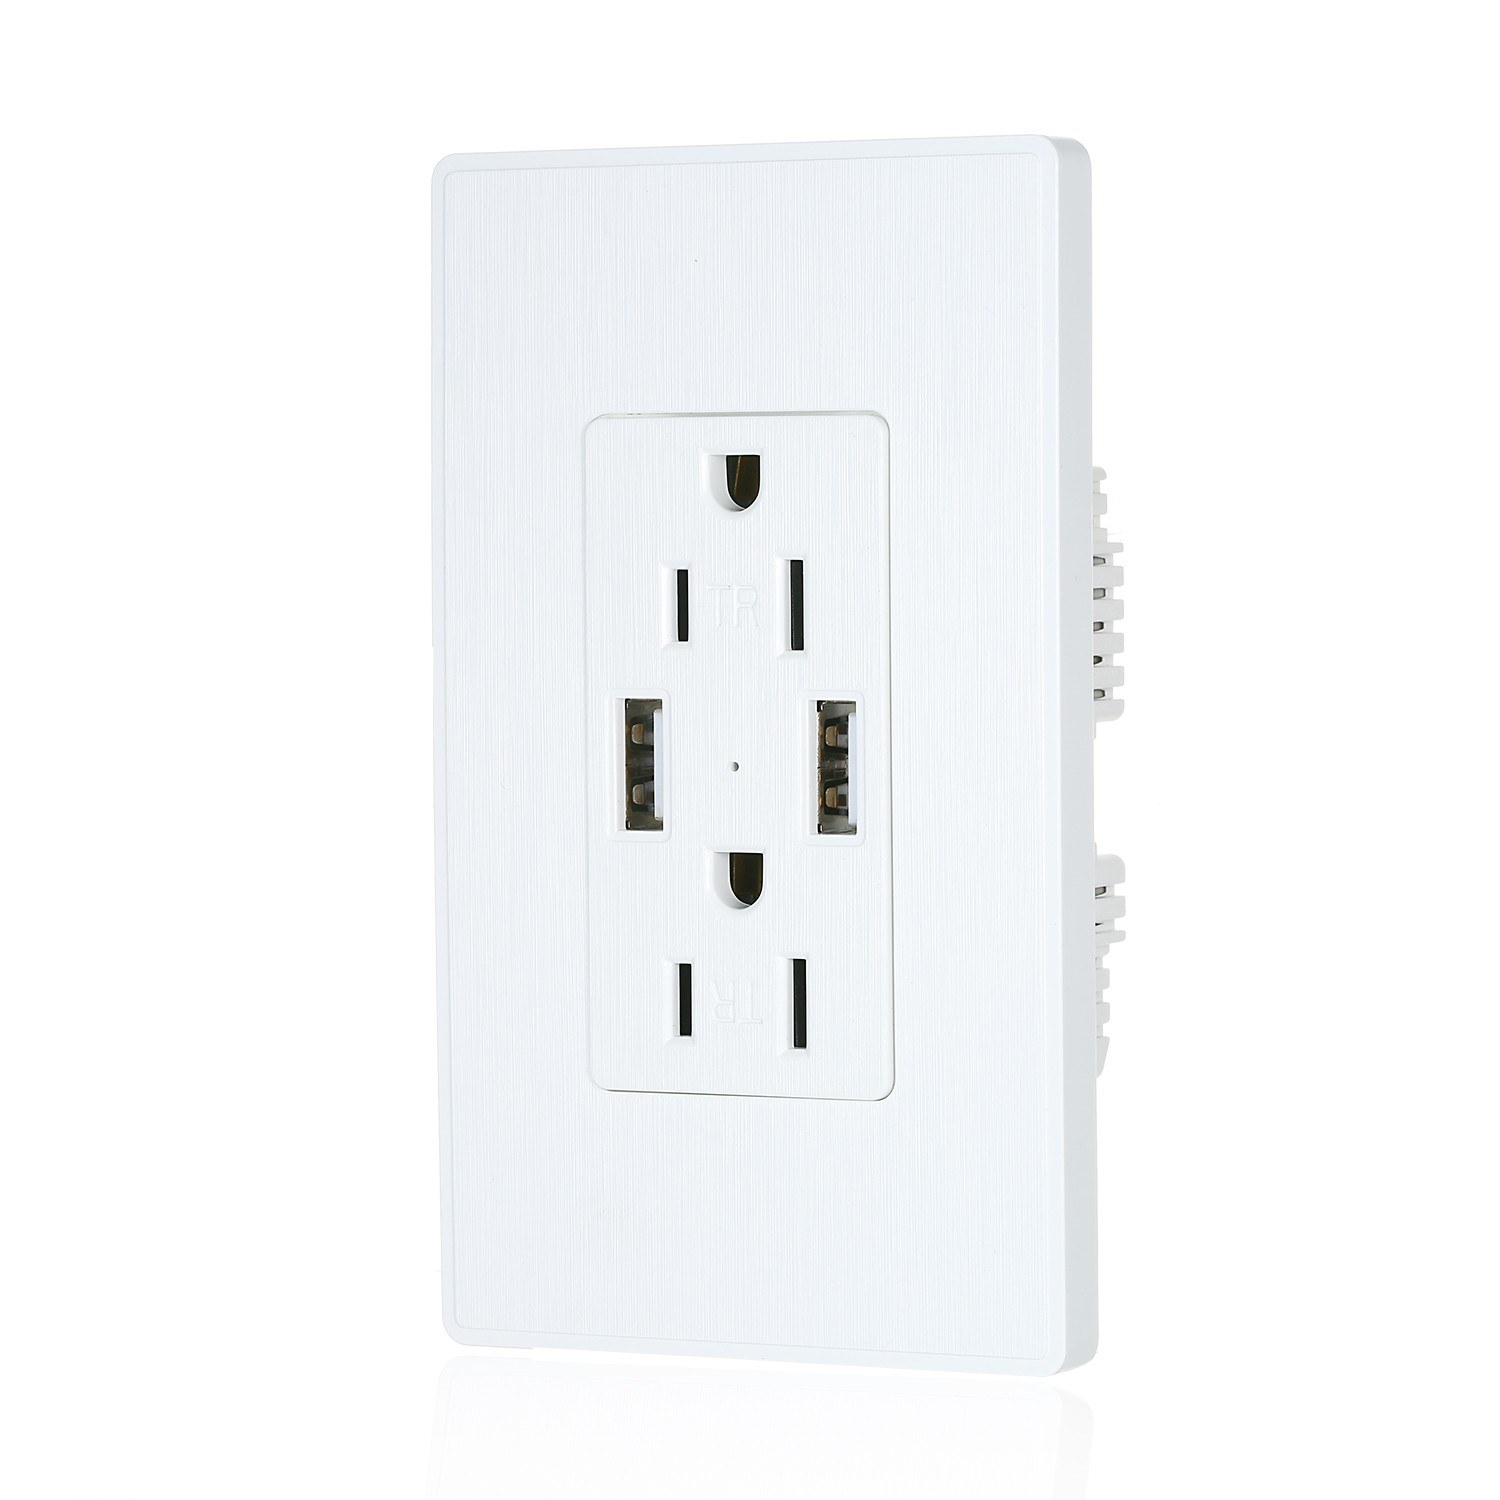 2.1A USB Outlet Wall Charger 15A TR Decora Outlet Receptacle with Dual USB Ports Wall socket USB Outlet for iPhone Samsung and More with TR Protect White